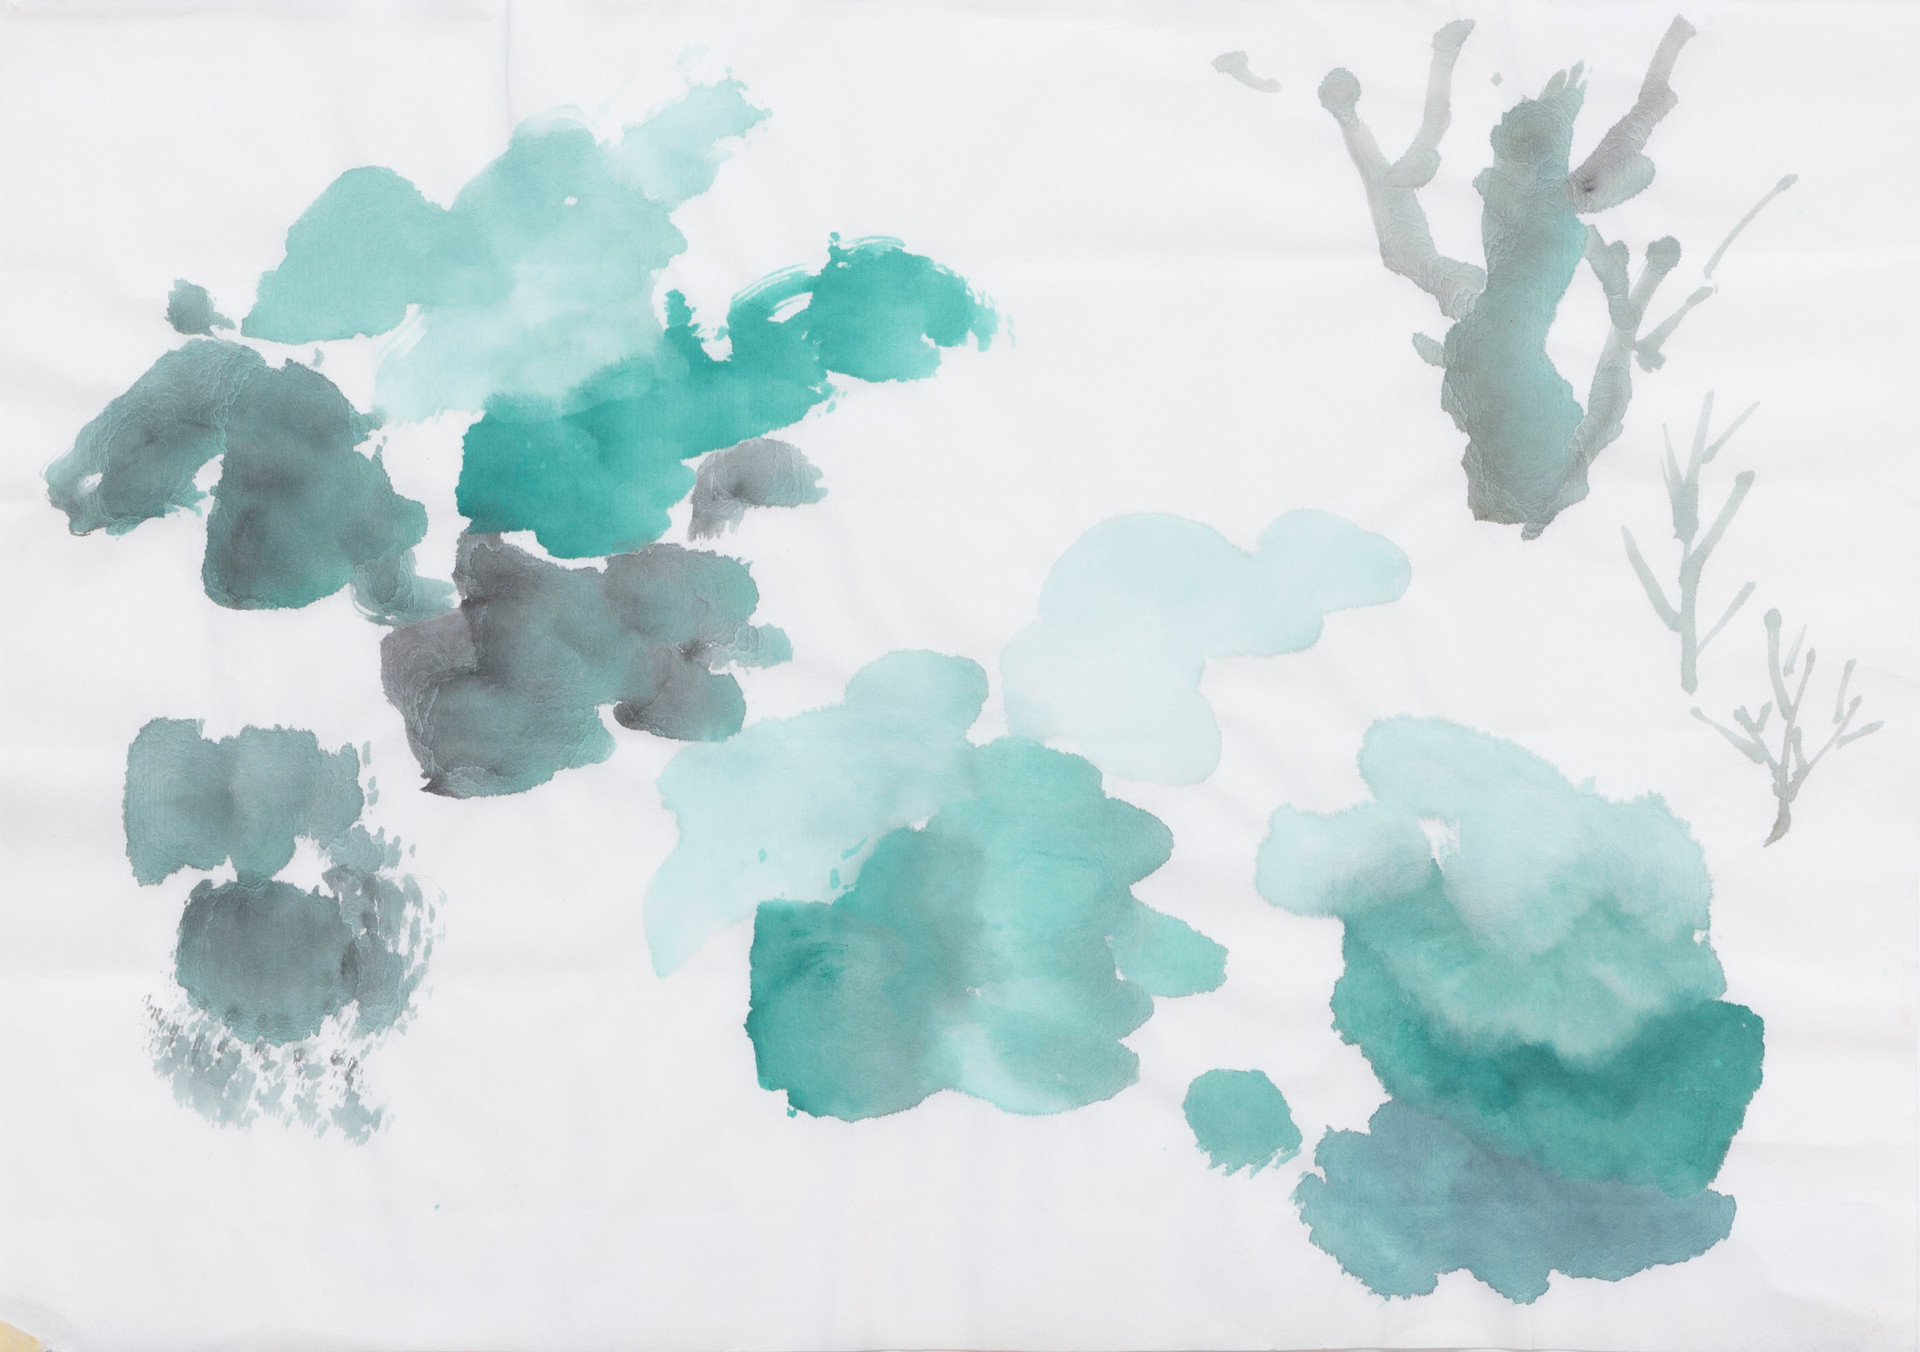 Untitled sketch - abstract green bushes